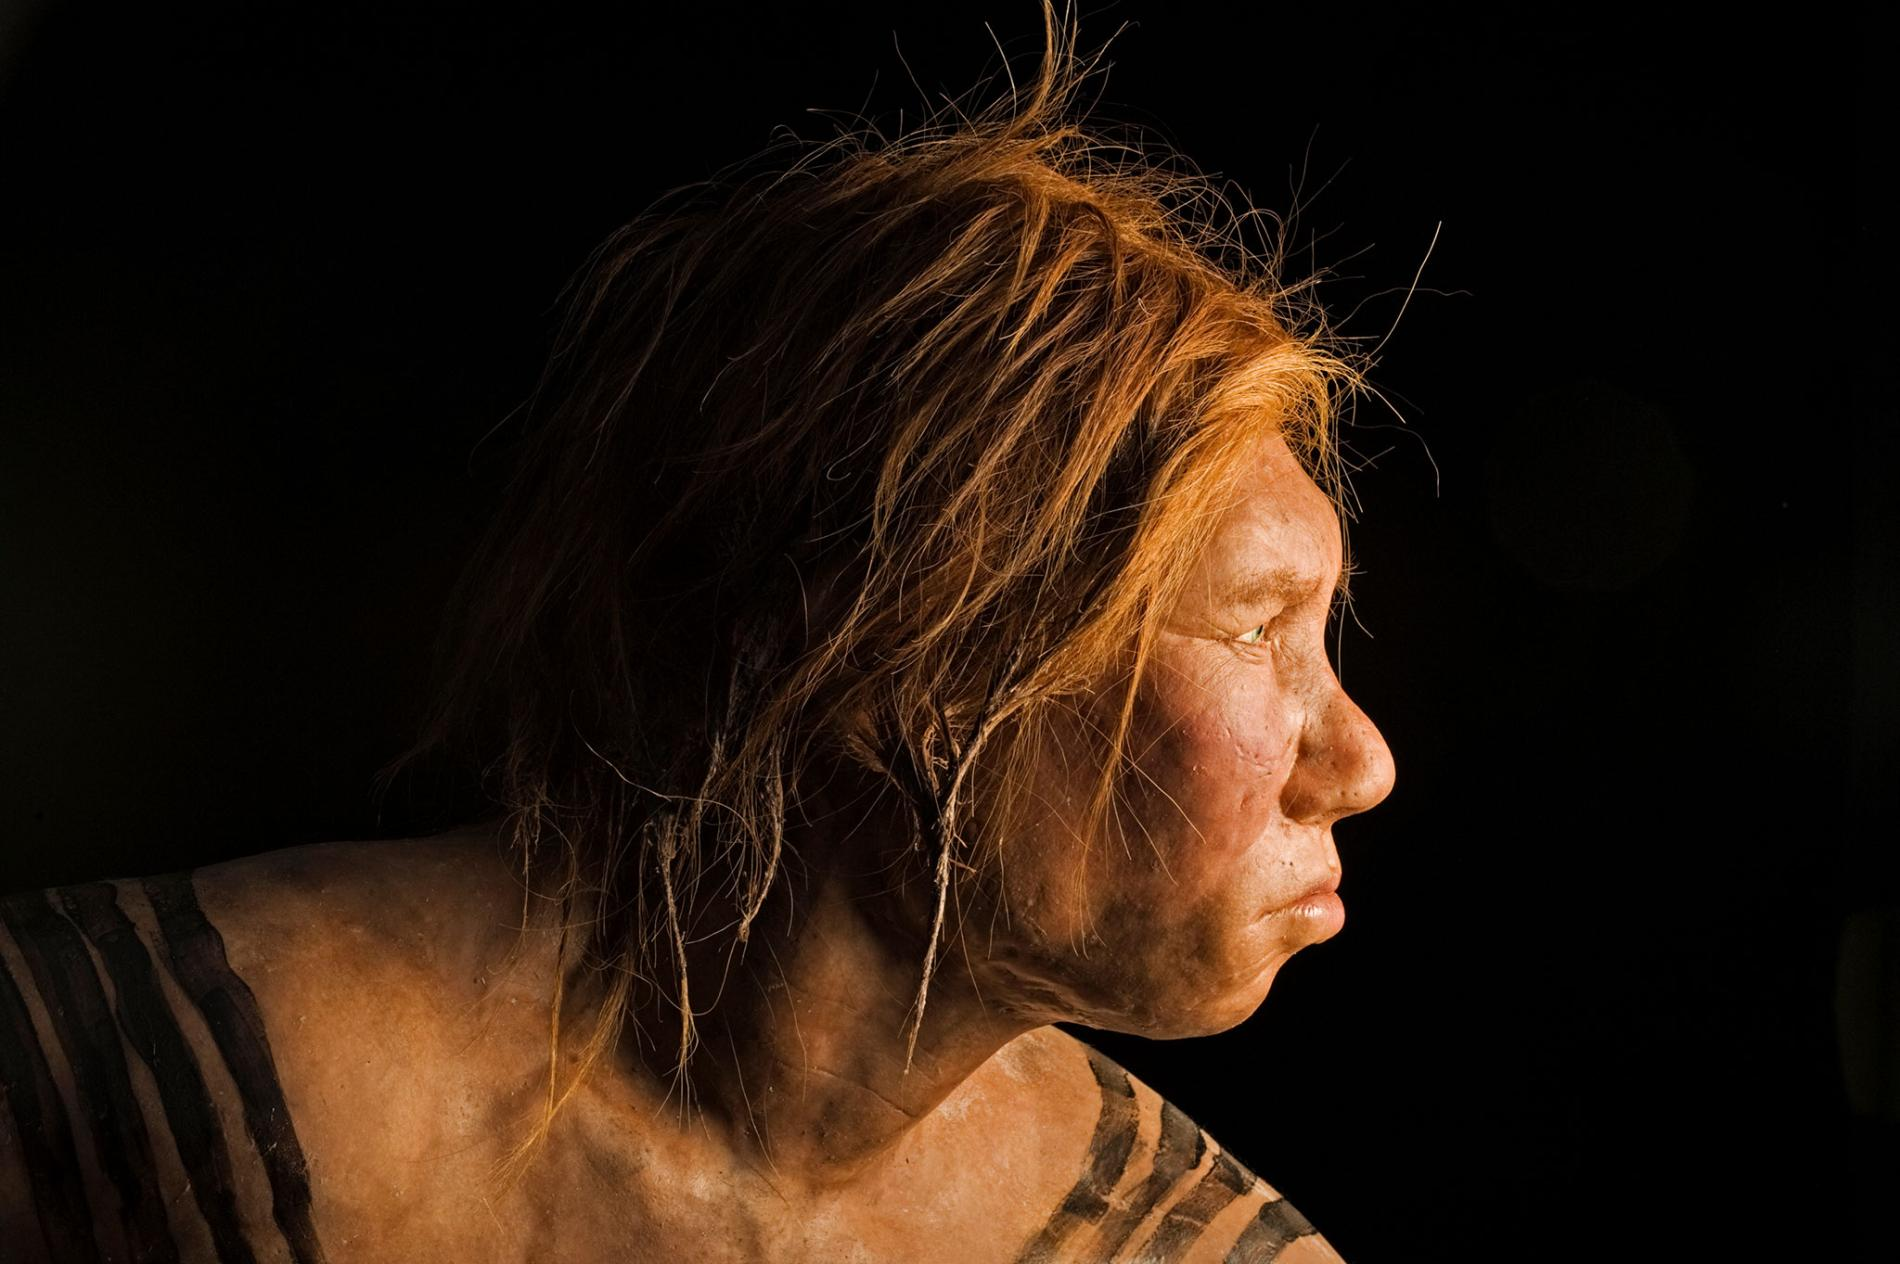 Unveiled in 2008, this reconstruction of a Neanderthal female was the first made using ancient DNA evidence. PHOTOGRAPHY BY JOE MCNALLY, NAT GEO IMAGE COLLECTION